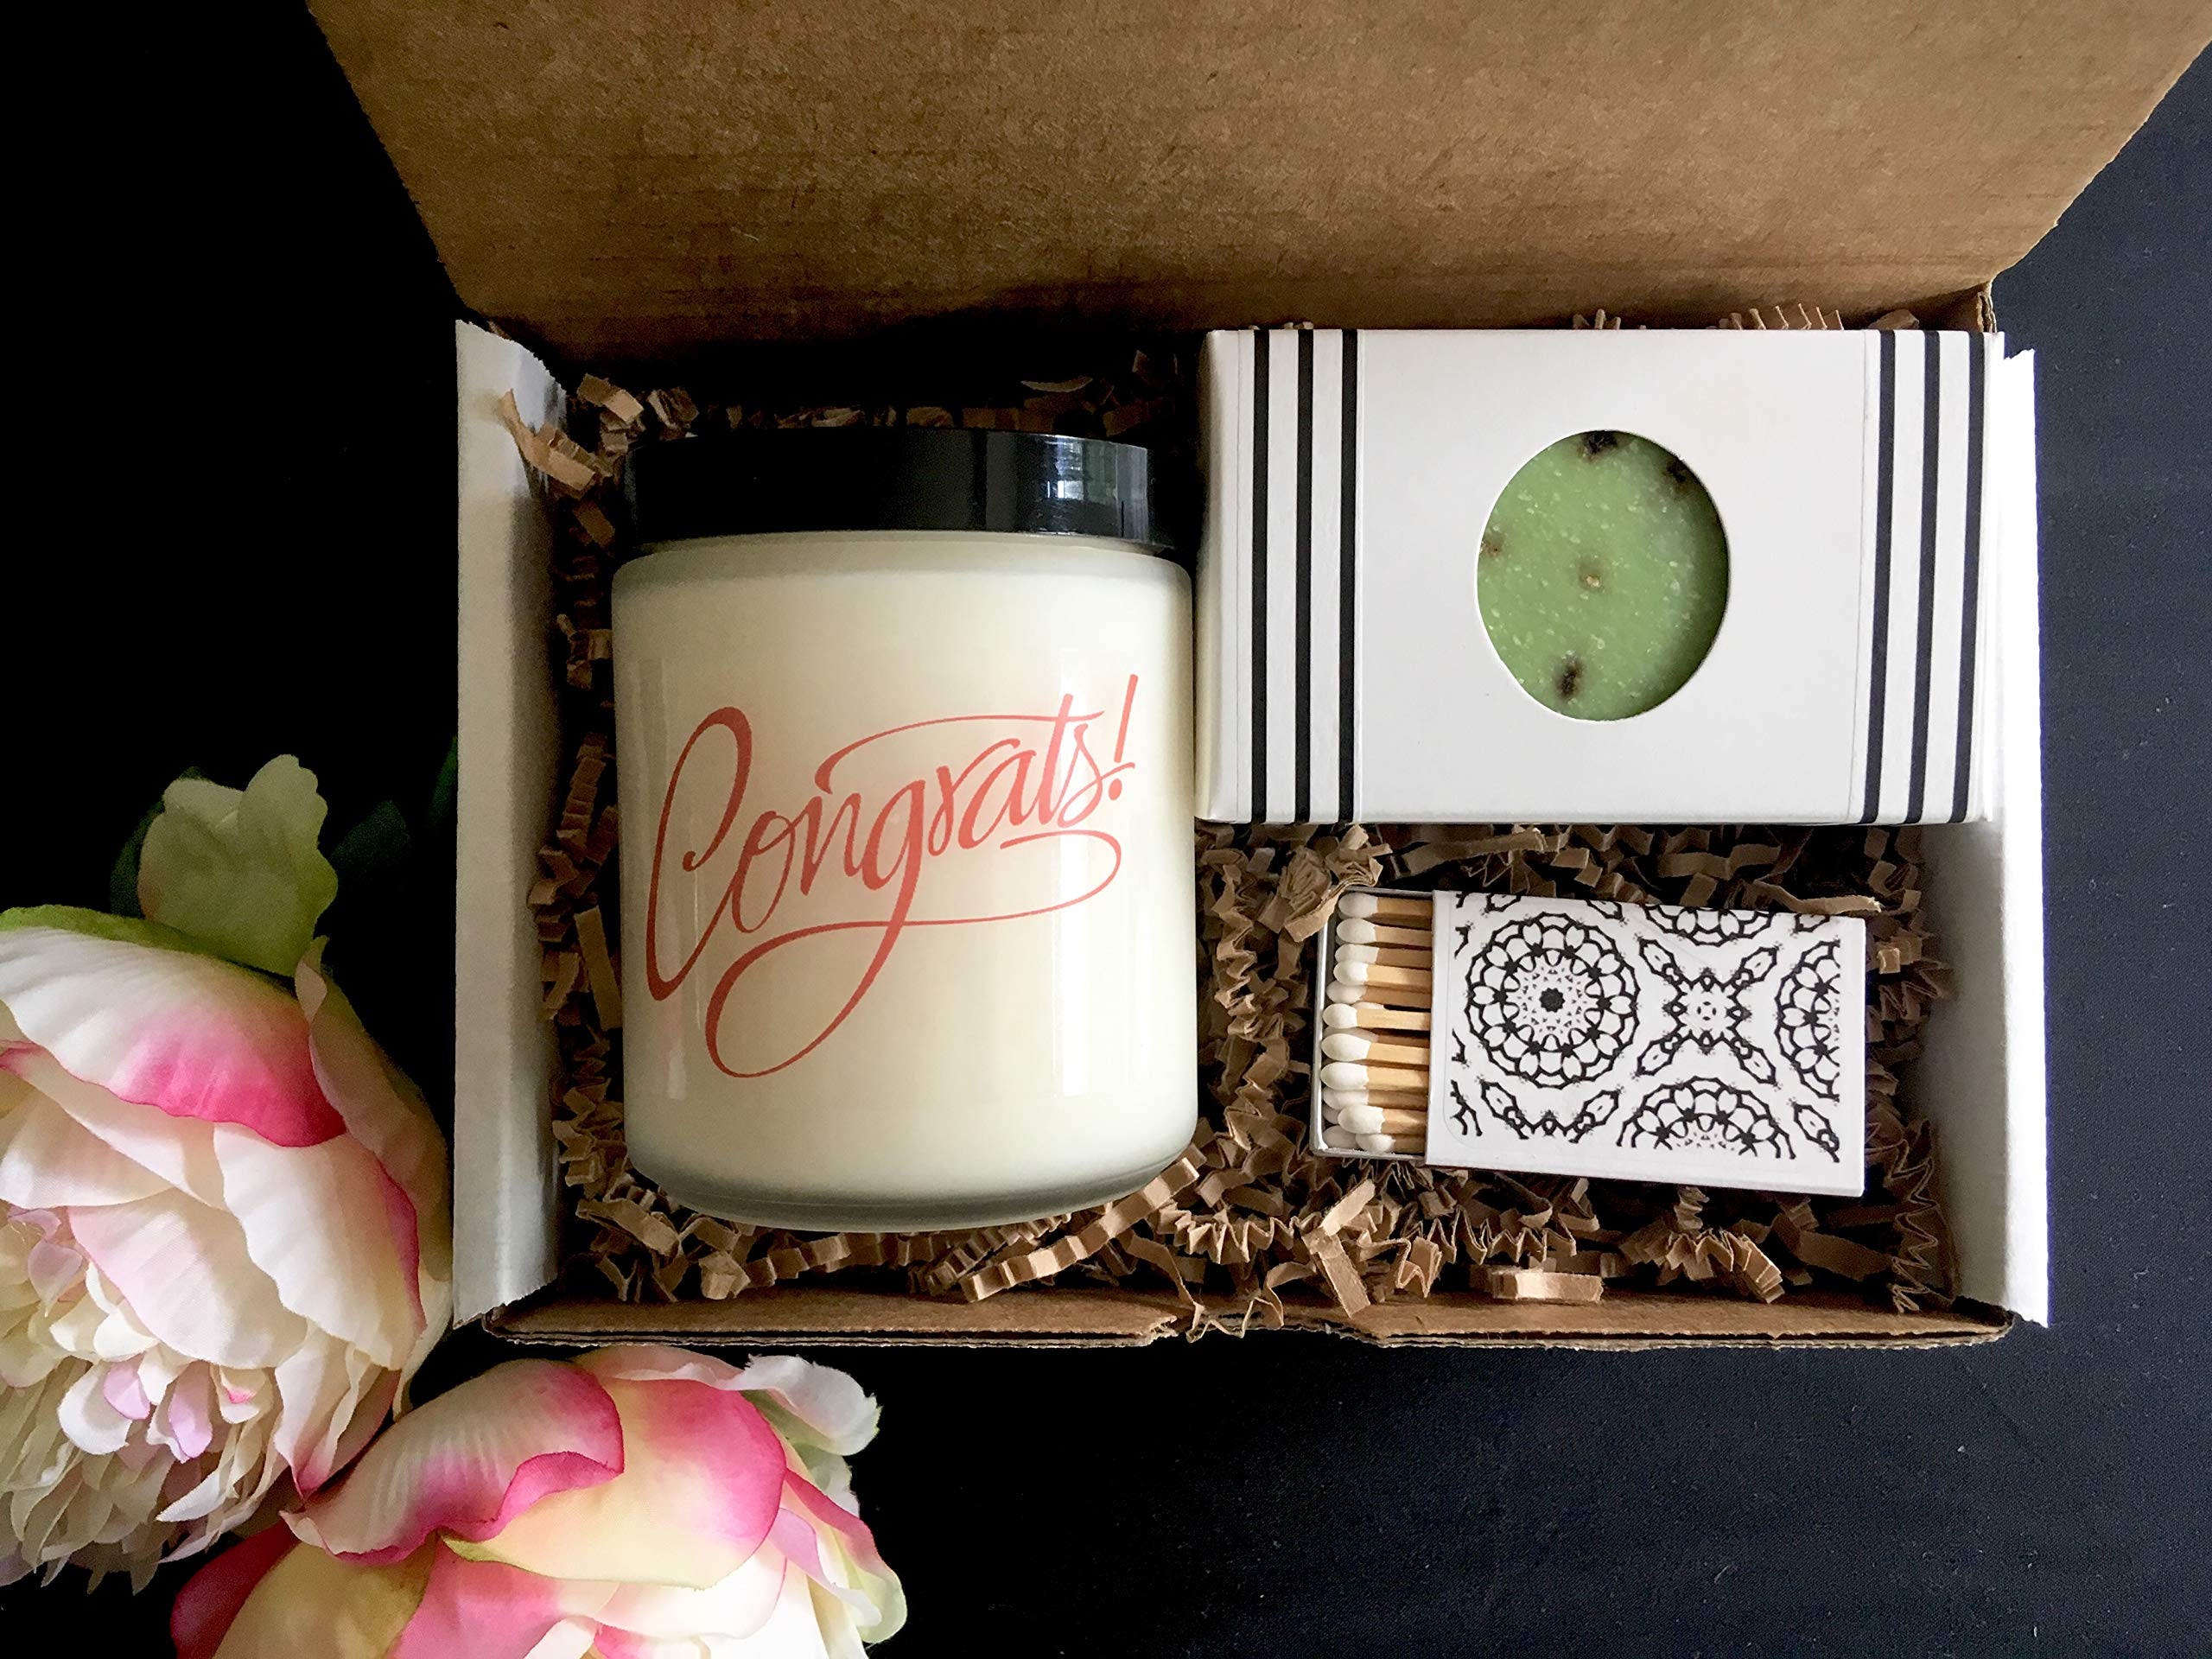 Congratulations Gift - Celebration Gift with Candle and Soap